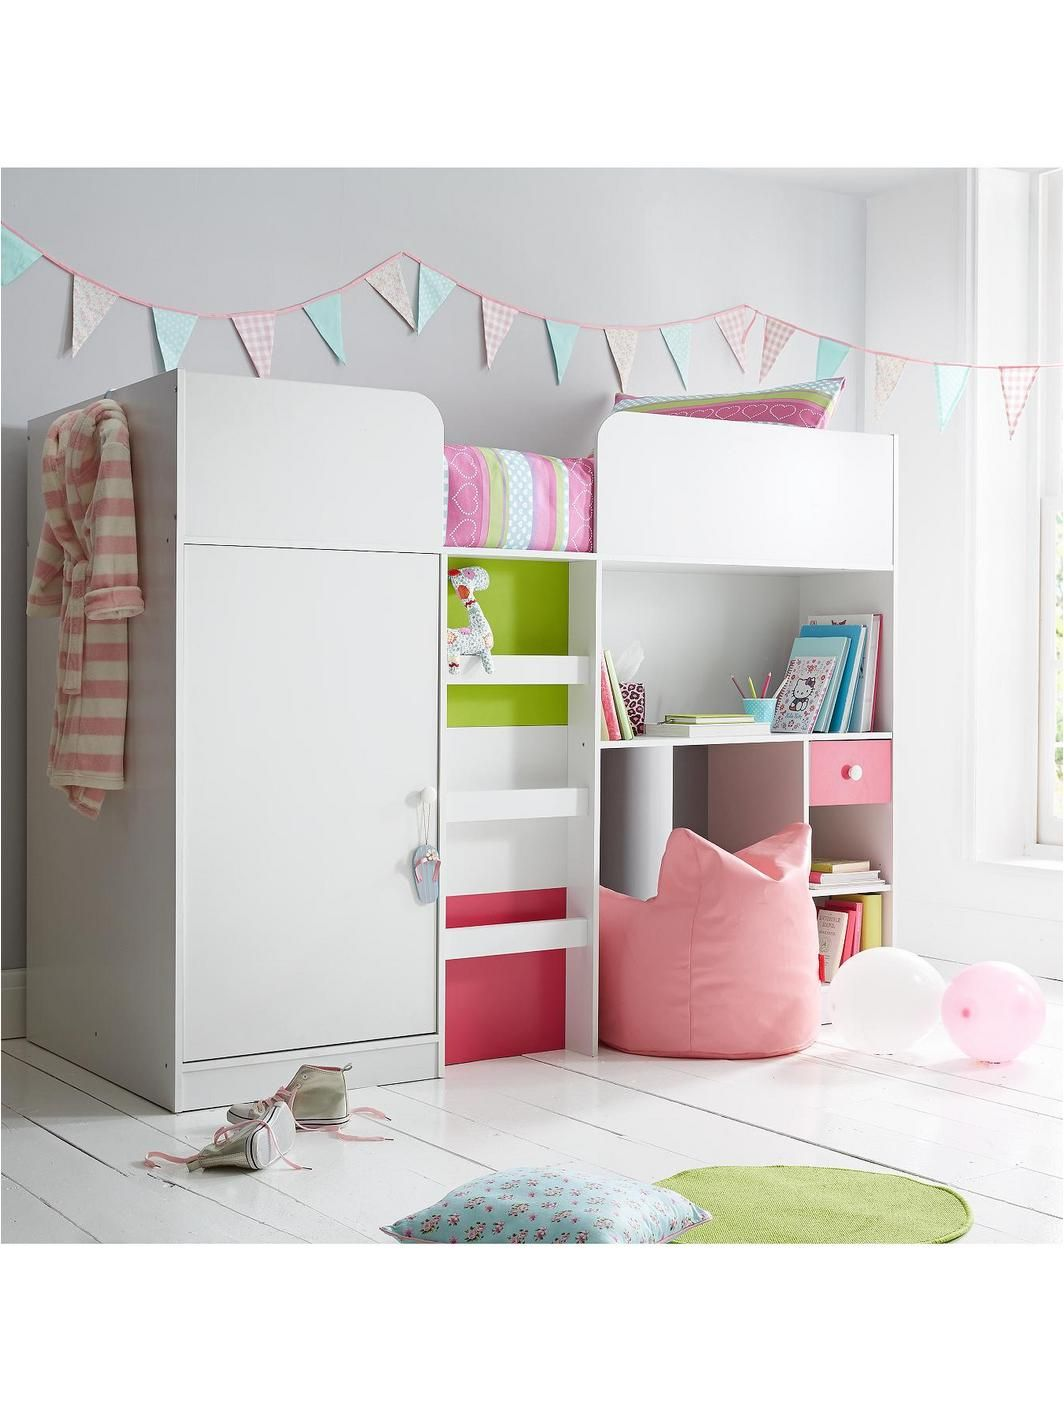 Small Box Room Cabin Bed For Grandma: Ladybird Orlando Fresh Mid Sleeper Bed With Built-In